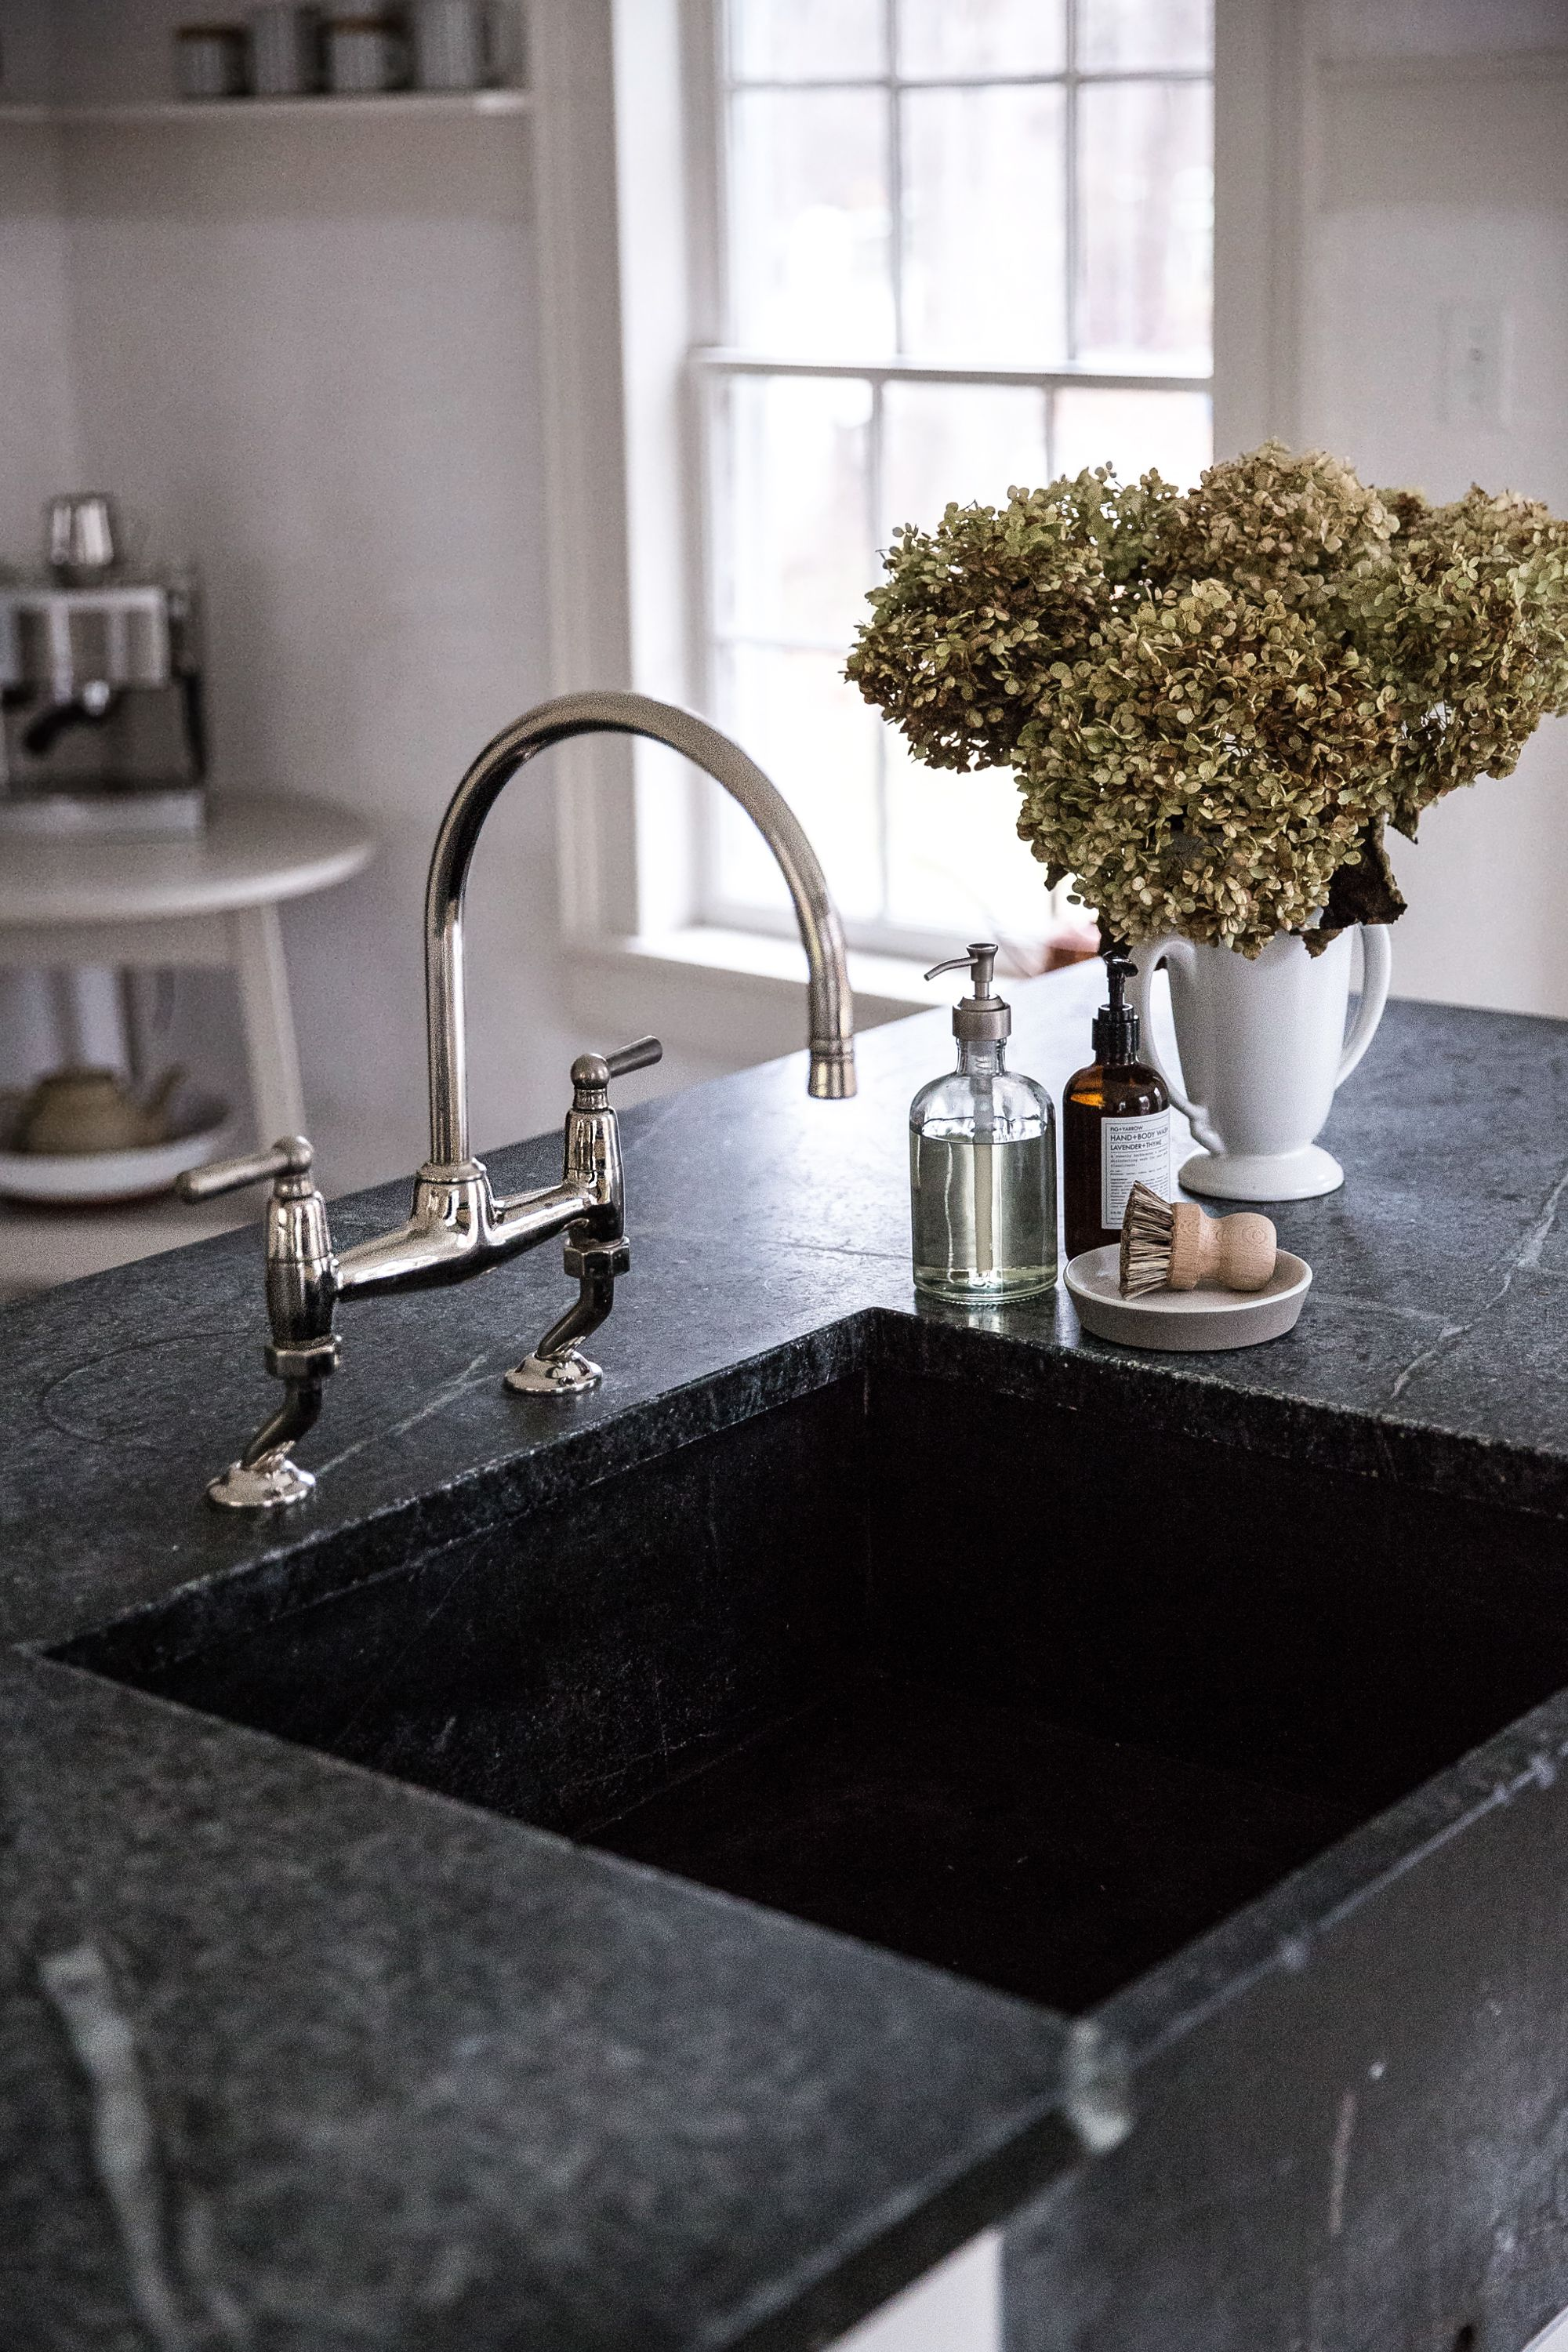 Design House Kitchen Faucets Old Soul A Revolution Era Hudson Valley Home Gets An Update From